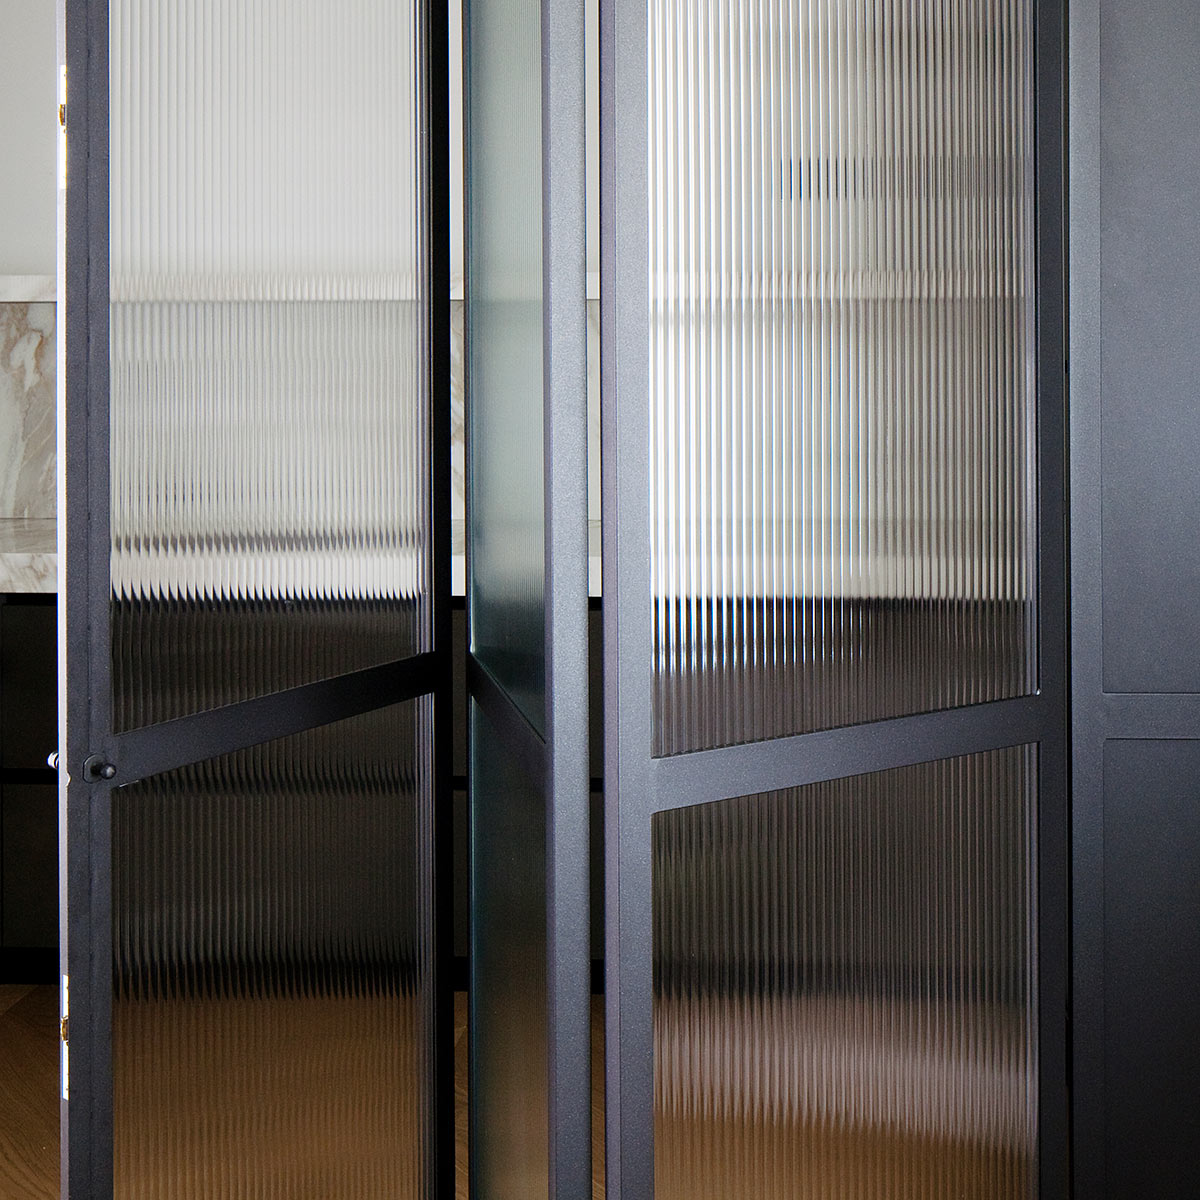 kickoffice casa dgr detail kitchen ribbed glass steel door opening